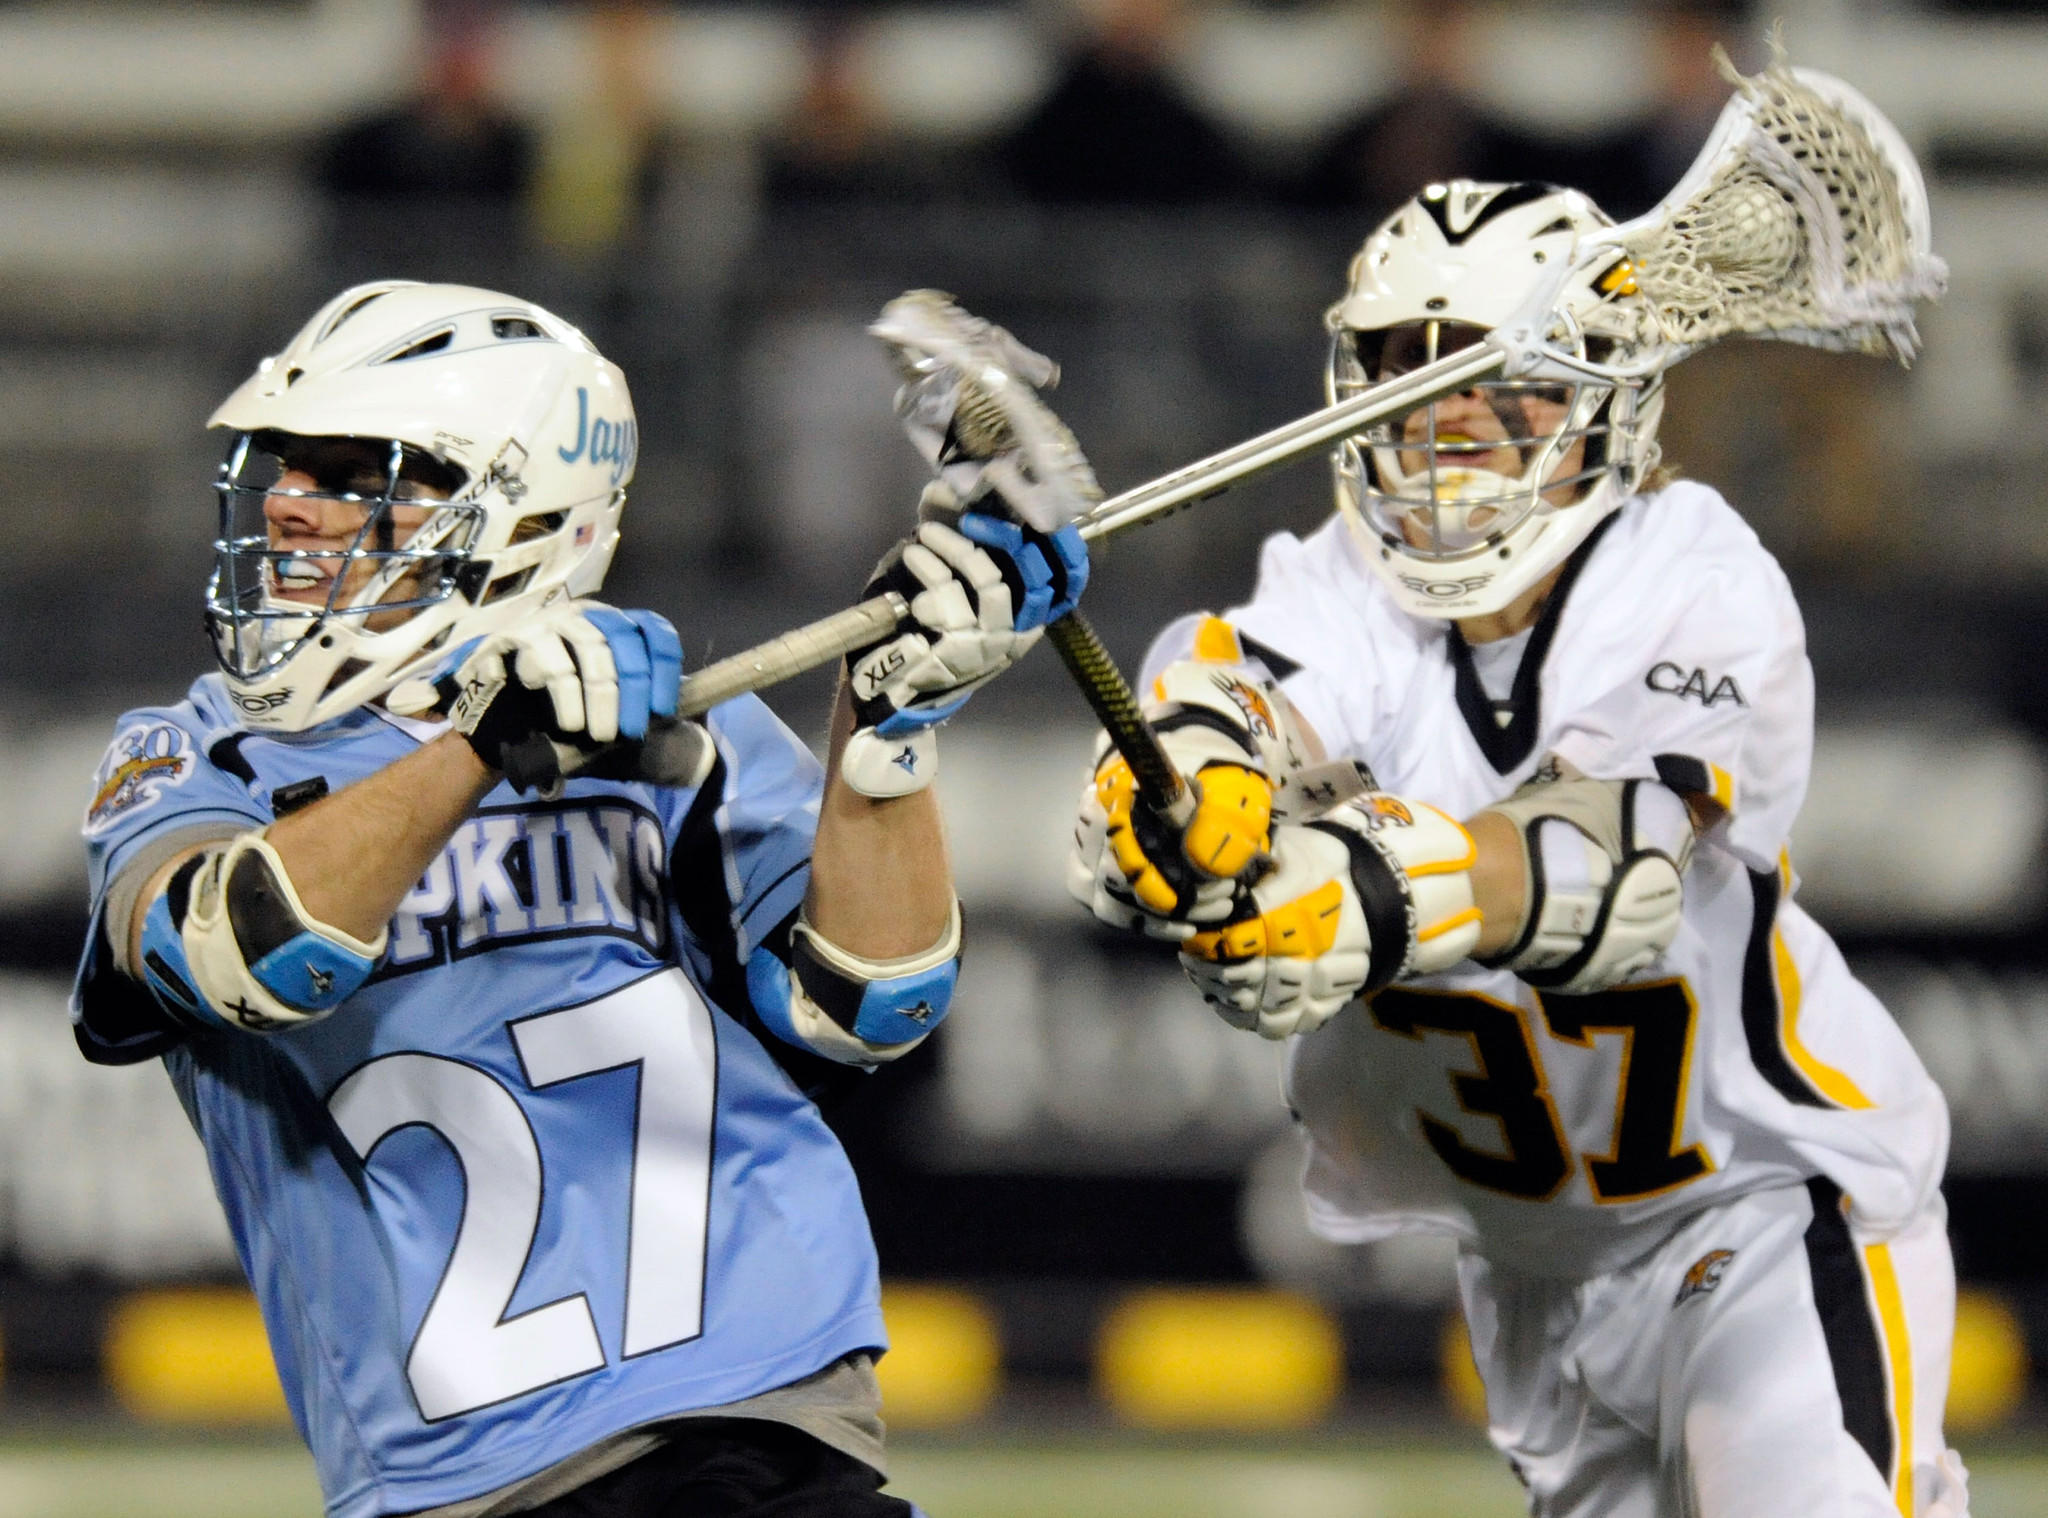 Towson's Dan Livingston, right, checks Johns Hopkins' Rob Guida in the first half of an eventual 12-6 Blue Jays win last season. The Tigers have lost 18 straight against their intrastate rival.